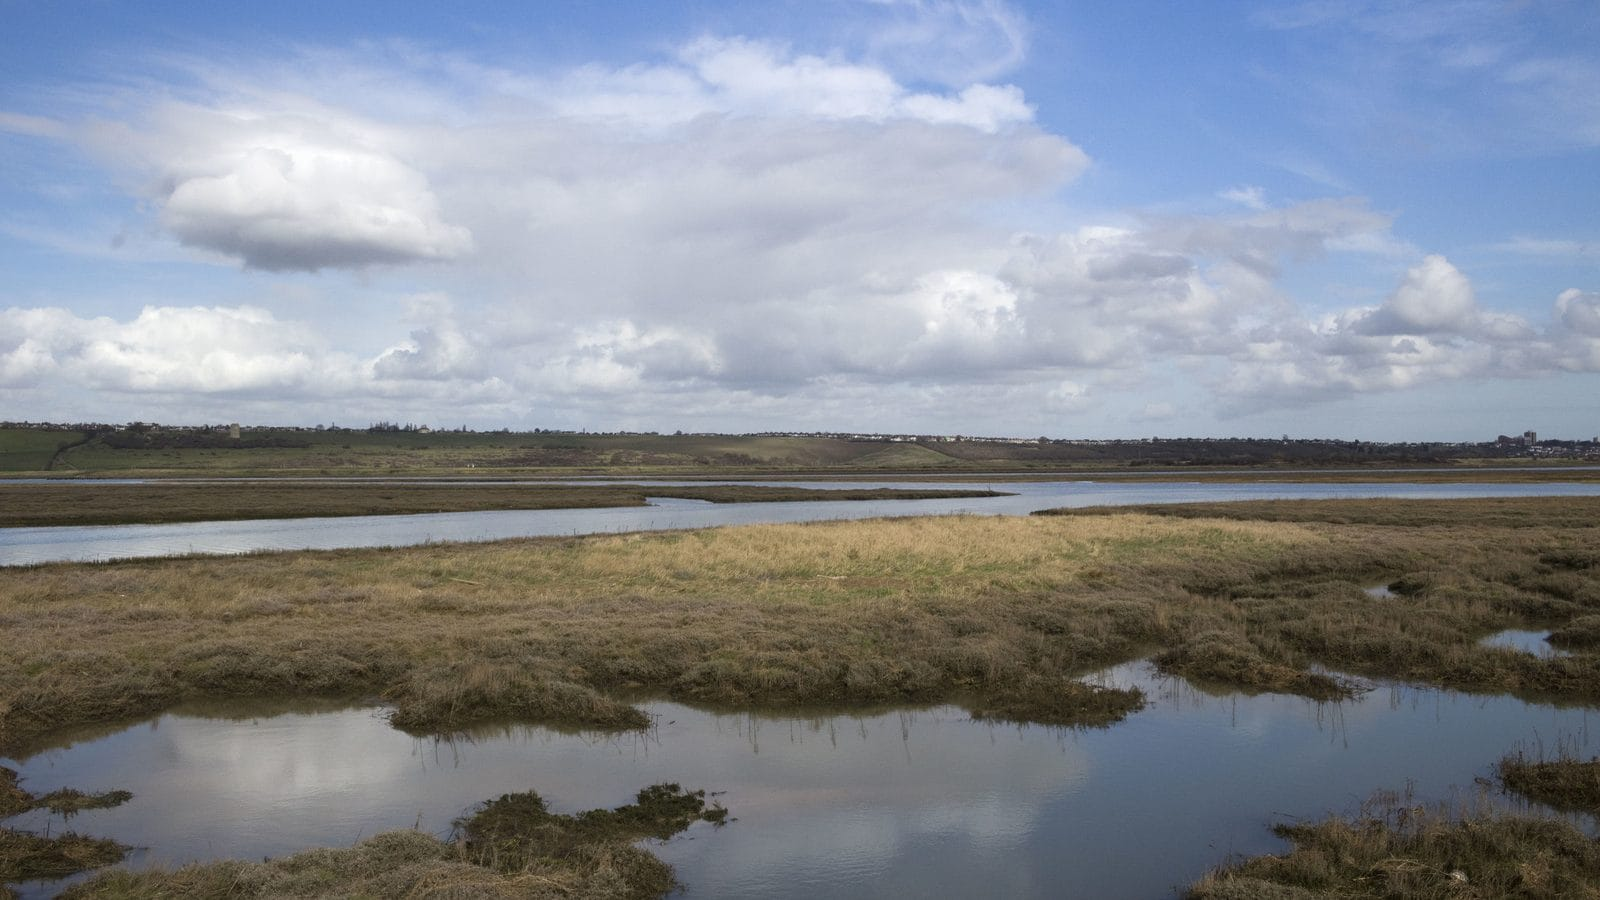 Window to the world: the Essex Marshes